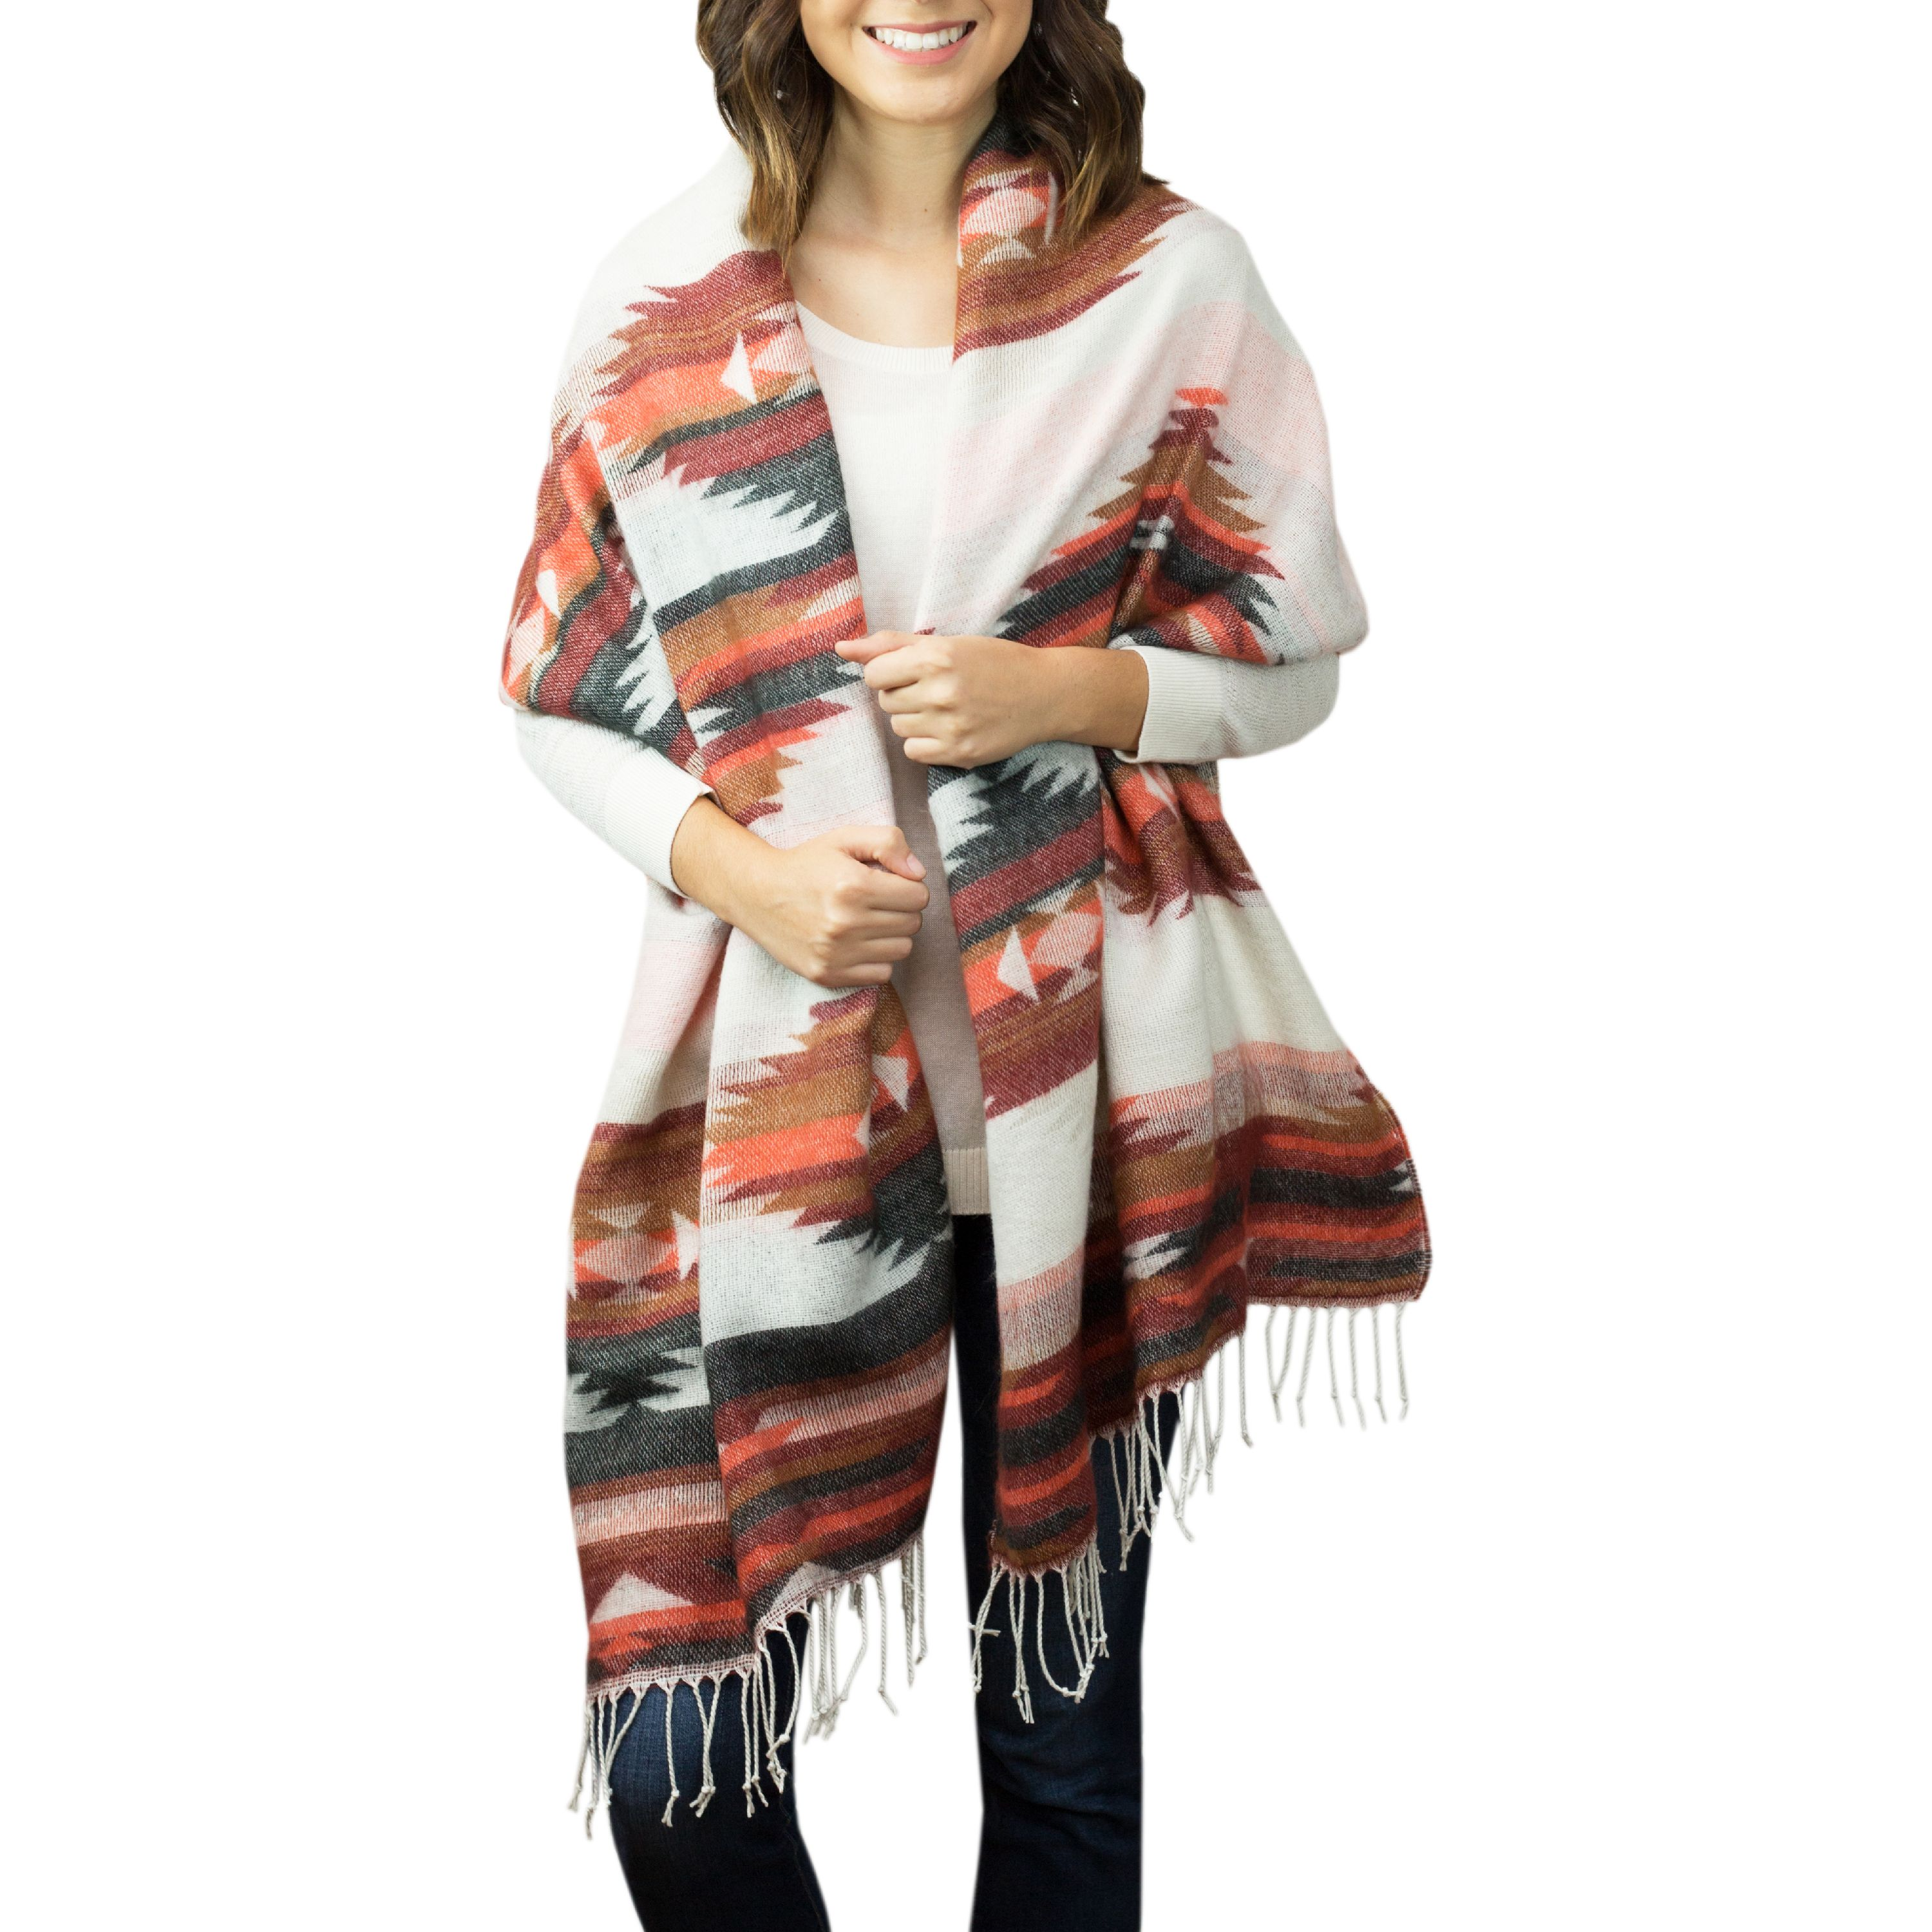 Faded Glory Women's Printed Blanket Scarf